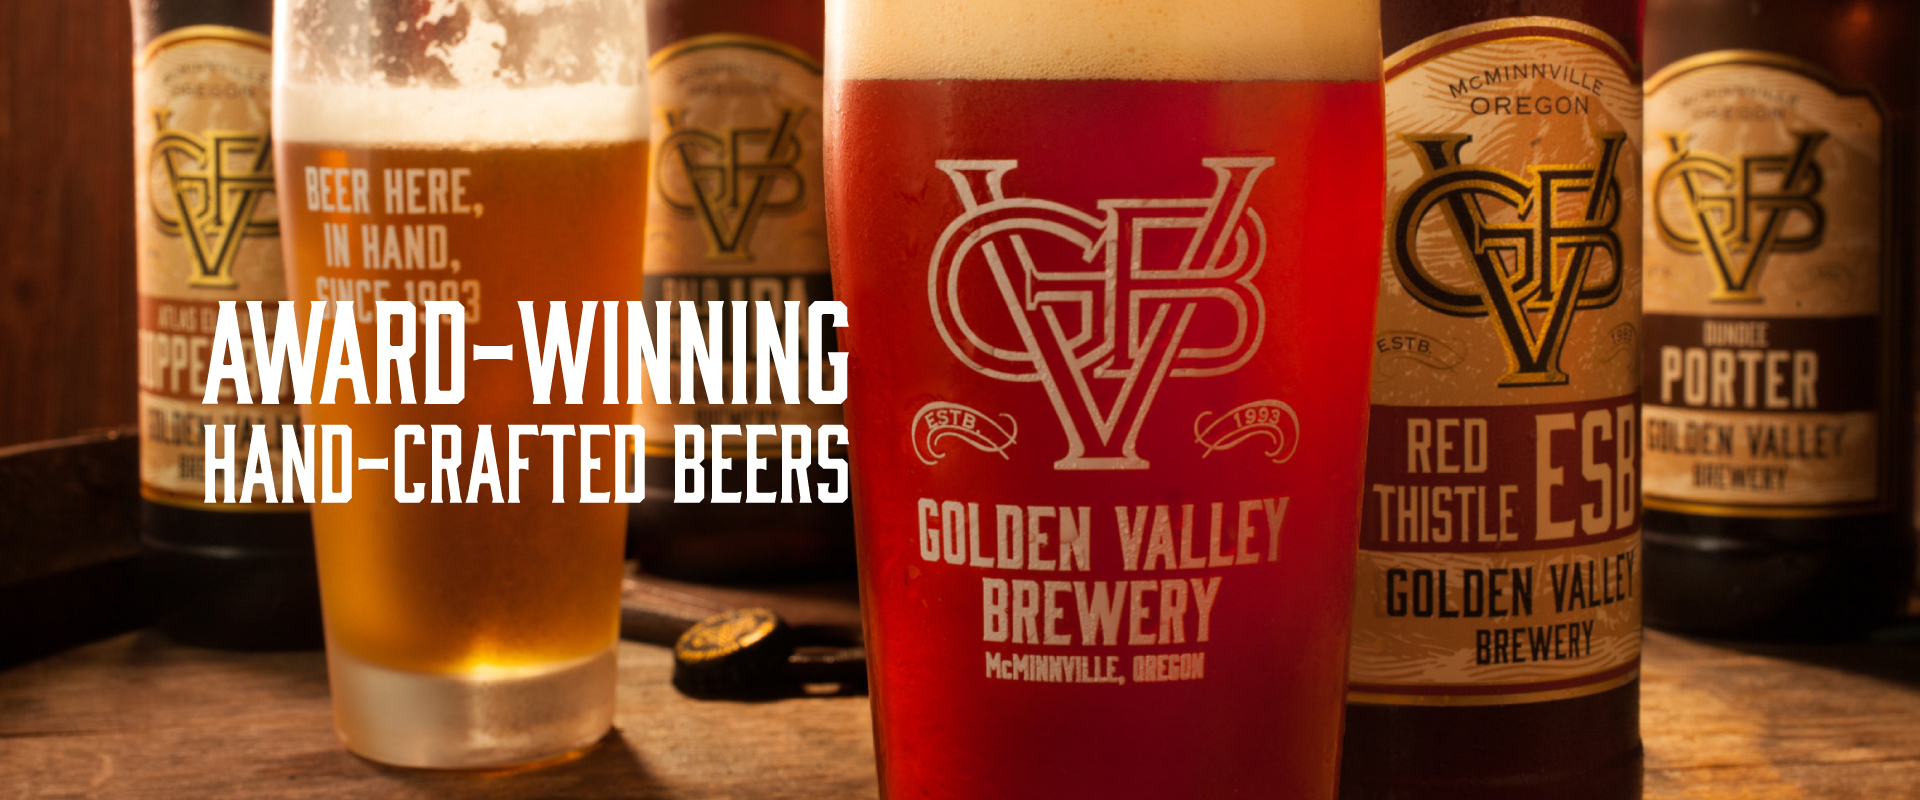 Award-Winning Hand-Crafted Beers by Golden Valley Brewery & Restaurant